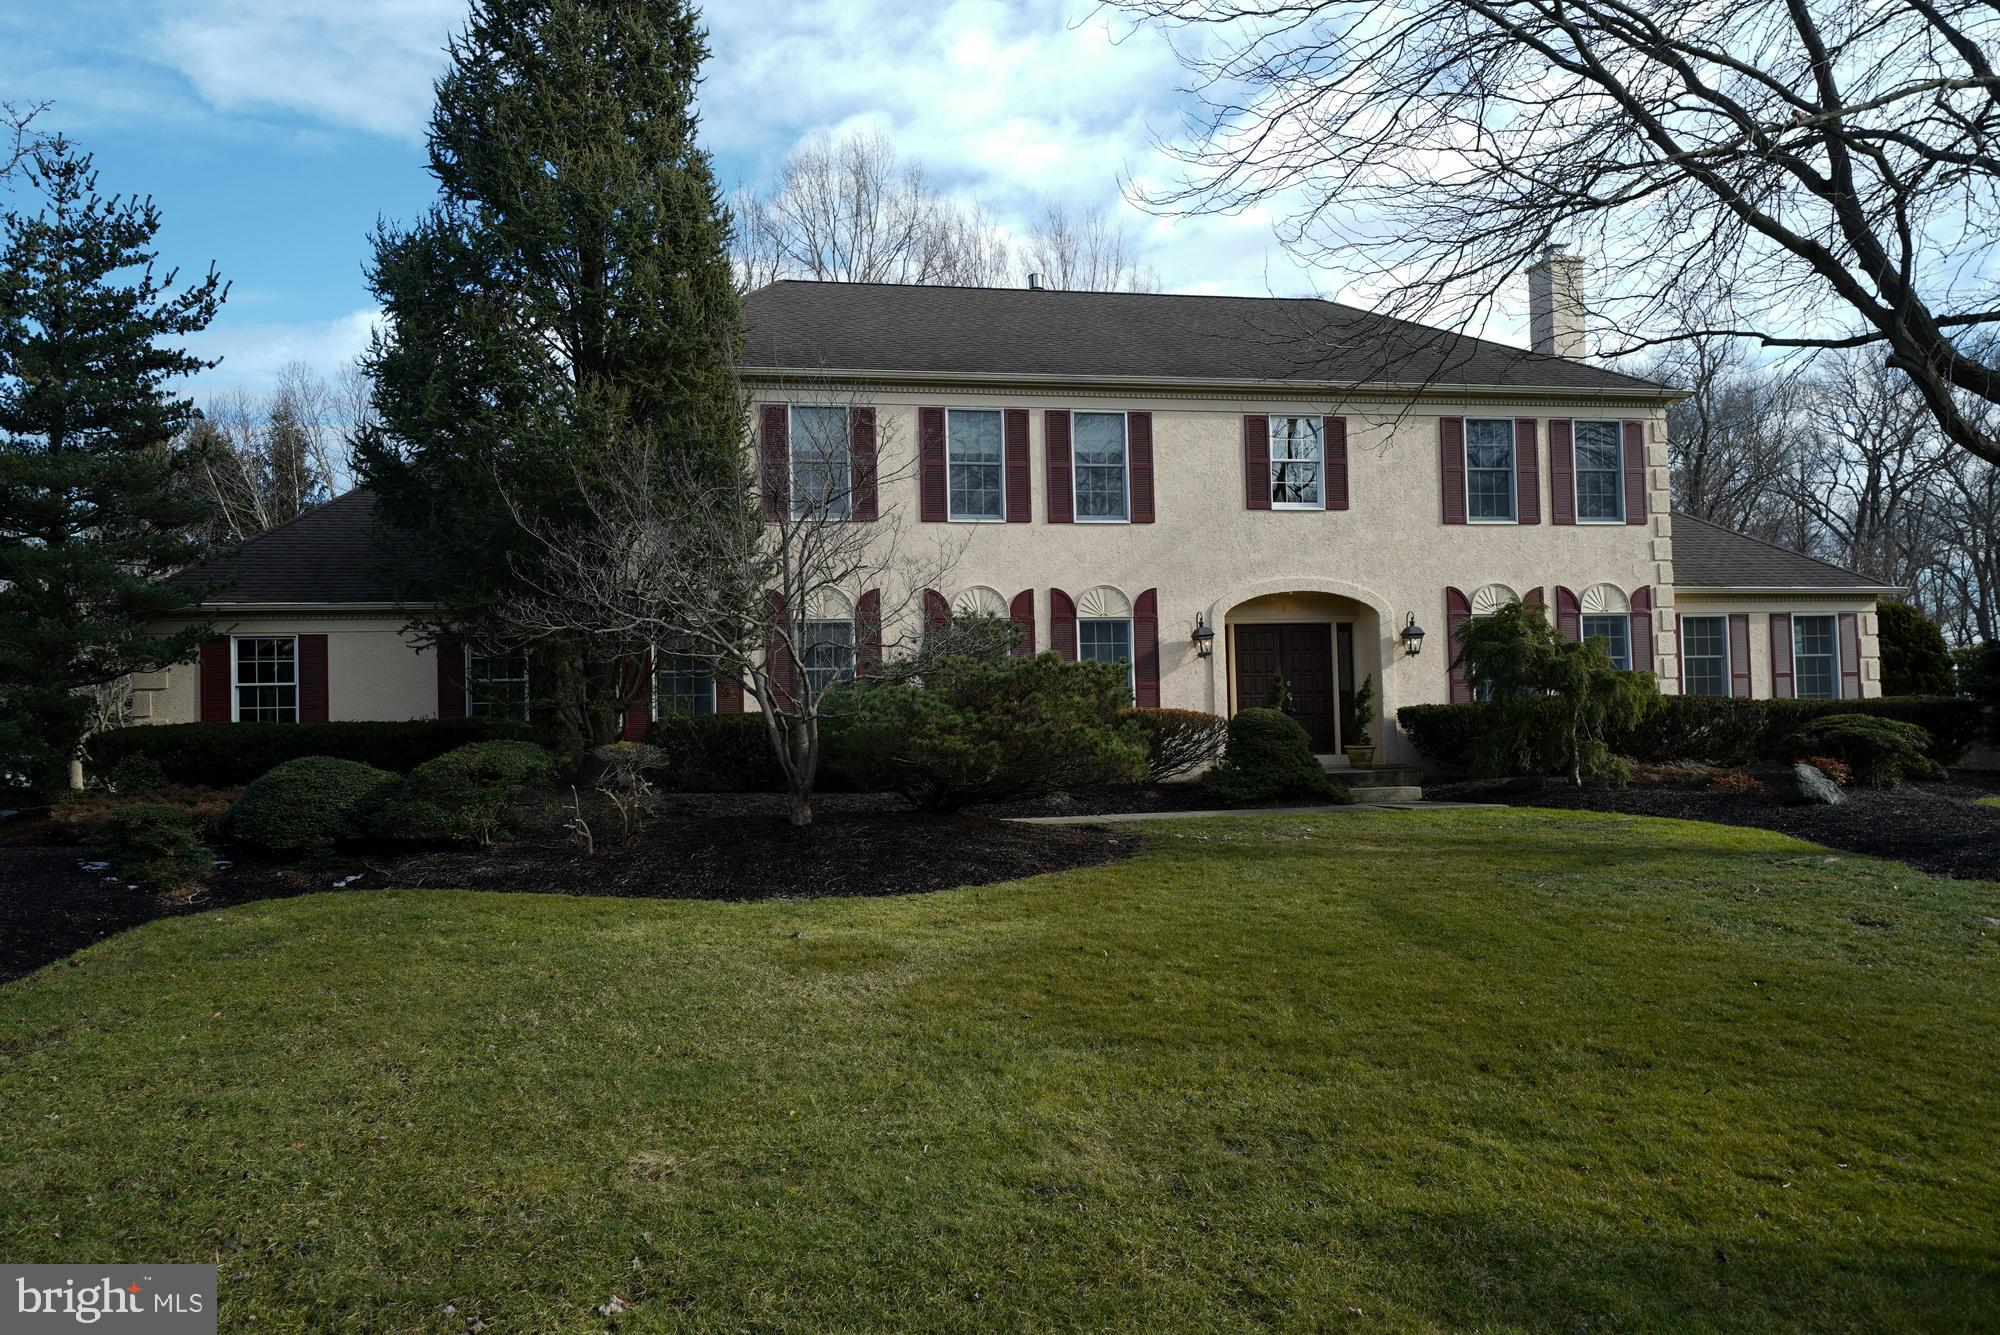 1 JARRETT COURT, WEST WINDSOR, NJ 08550